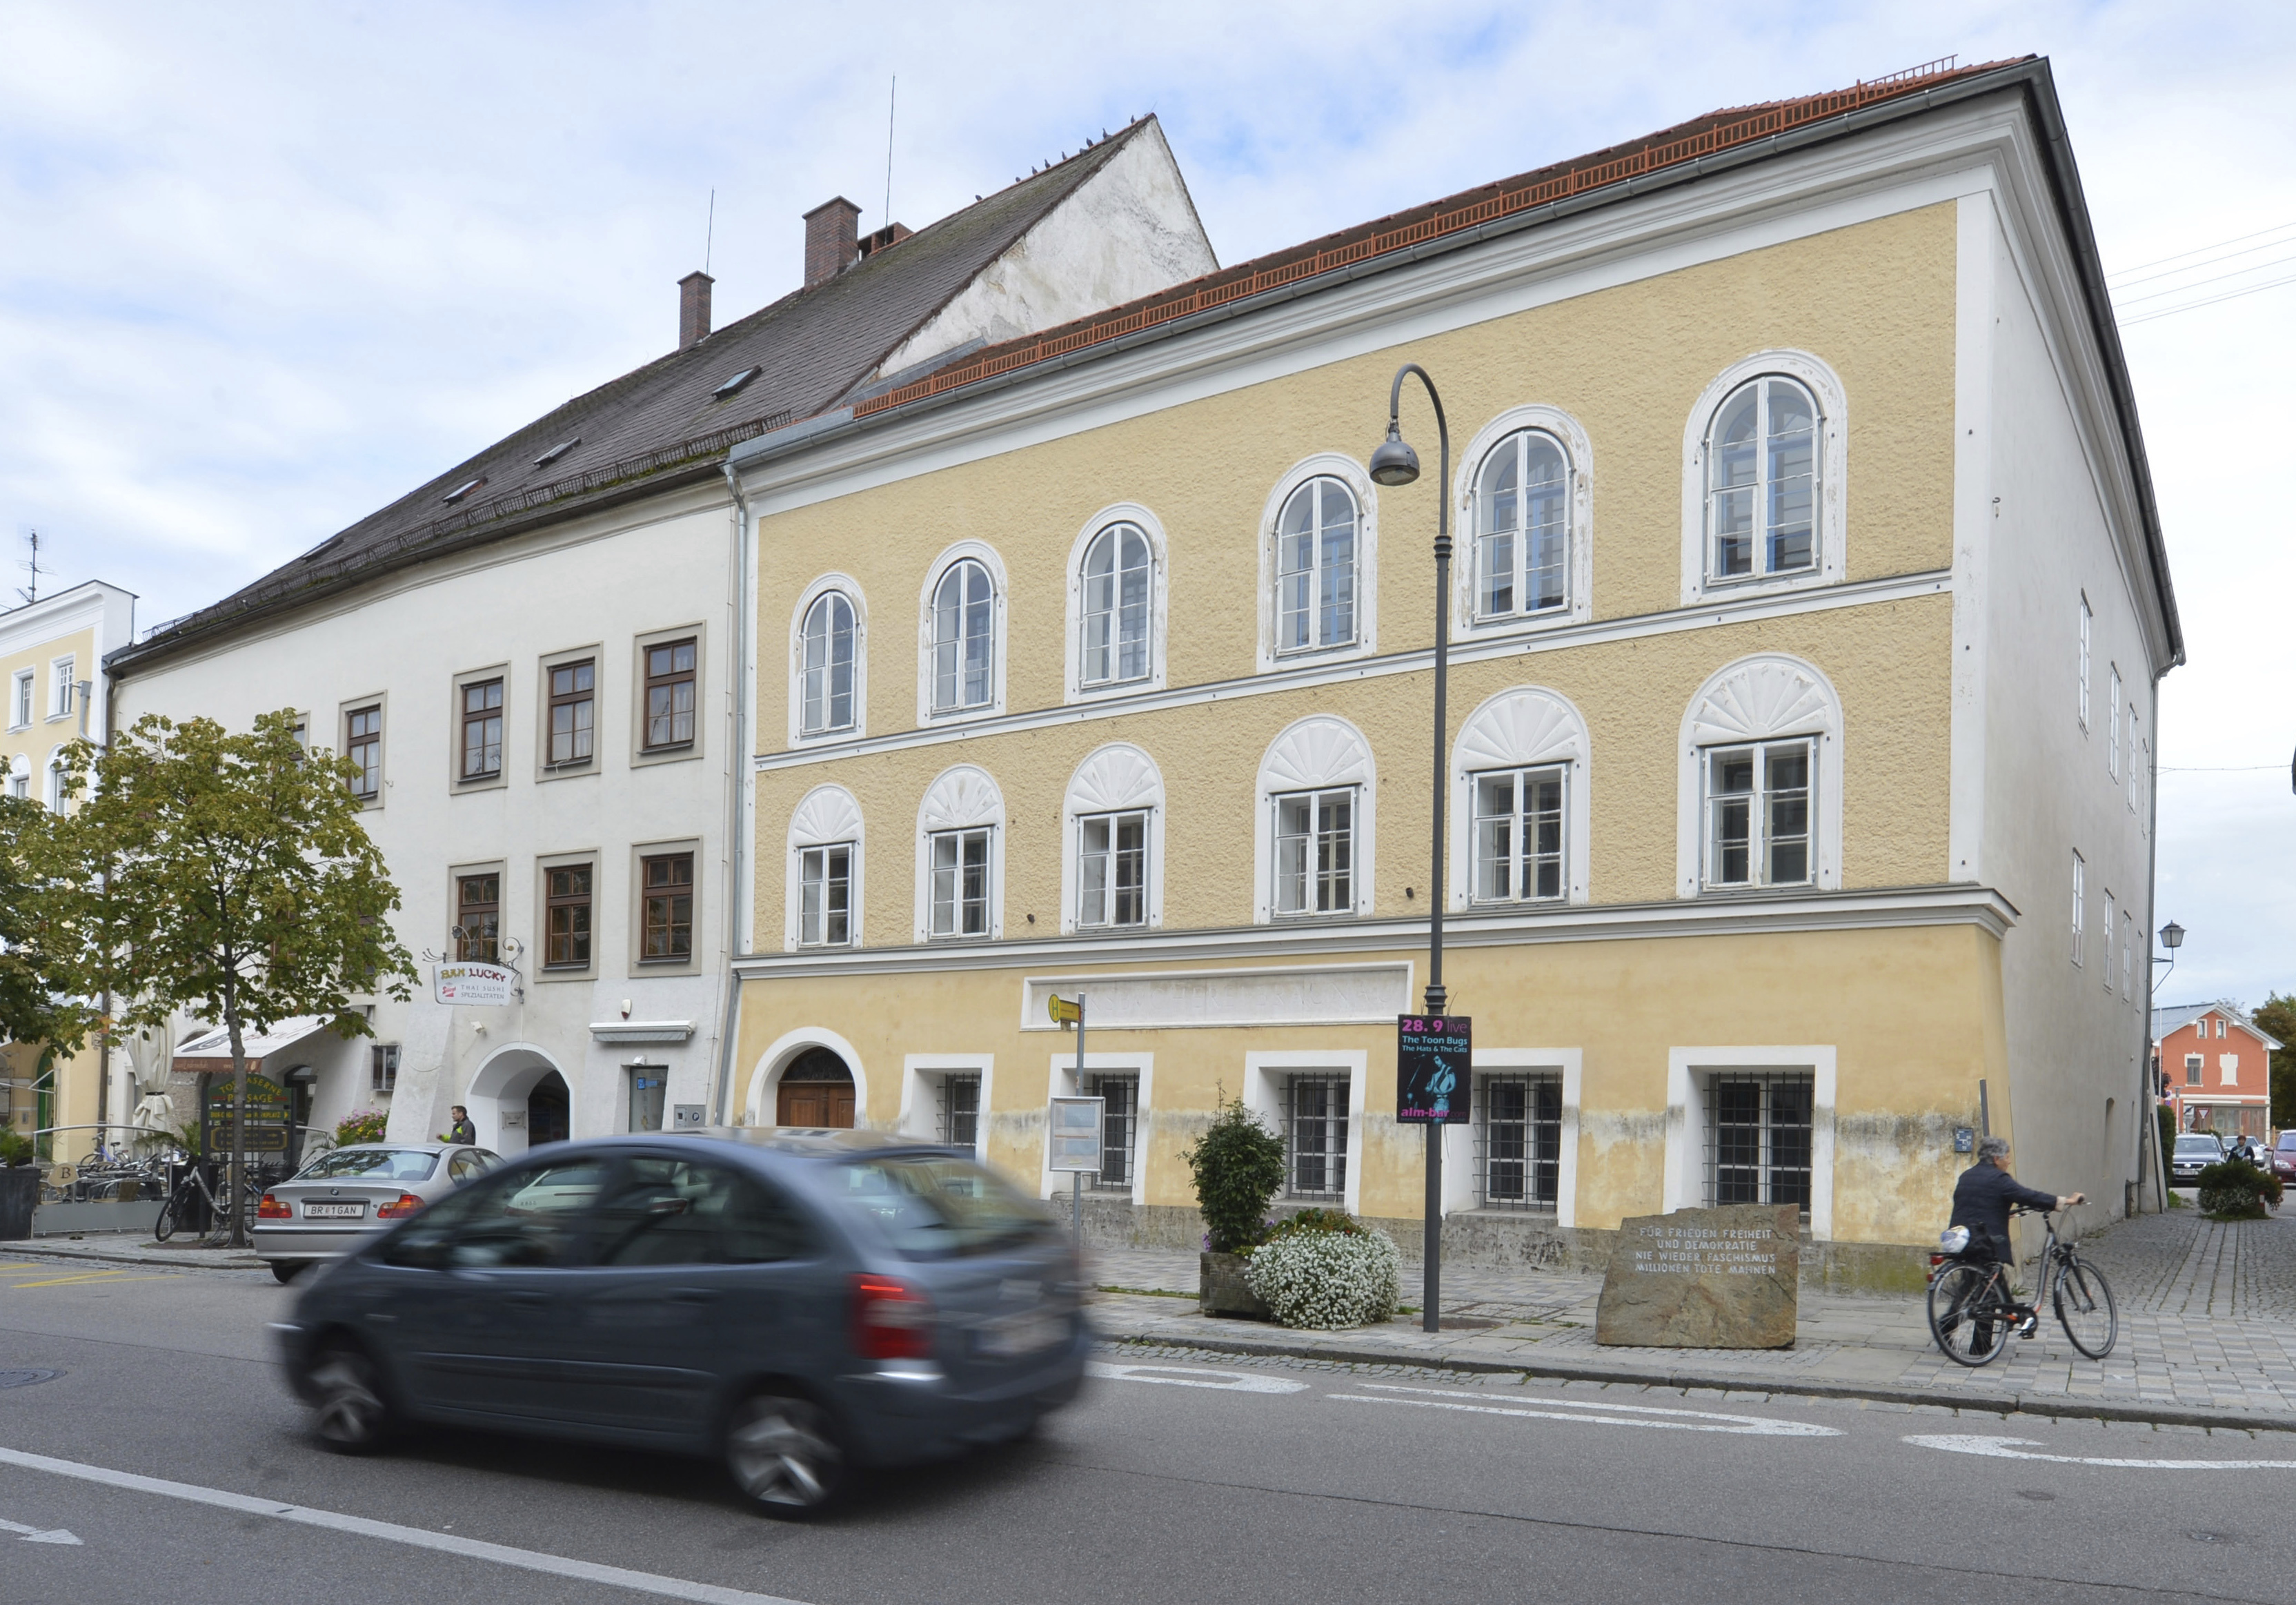 Austria government: House of Hitler's birth to be demolished